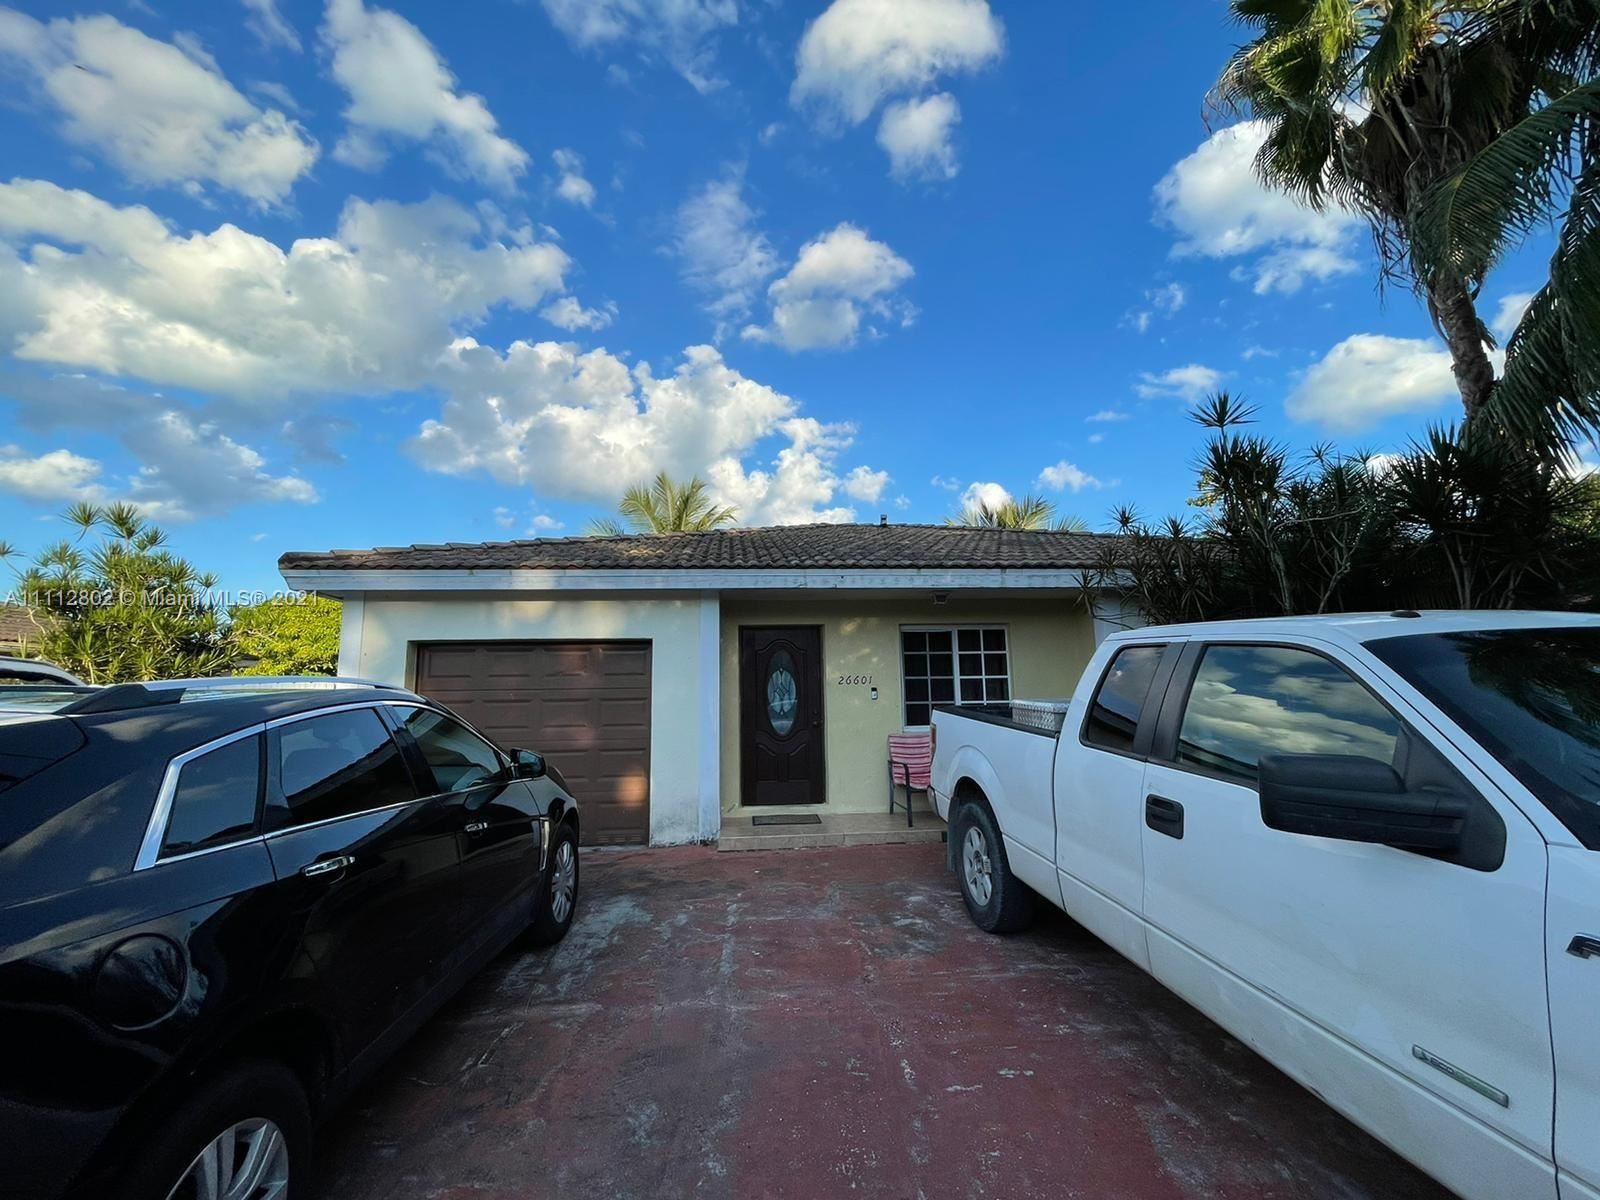 26601 SW 129th Ave, Homestead, FL 33032 - #: A11112802